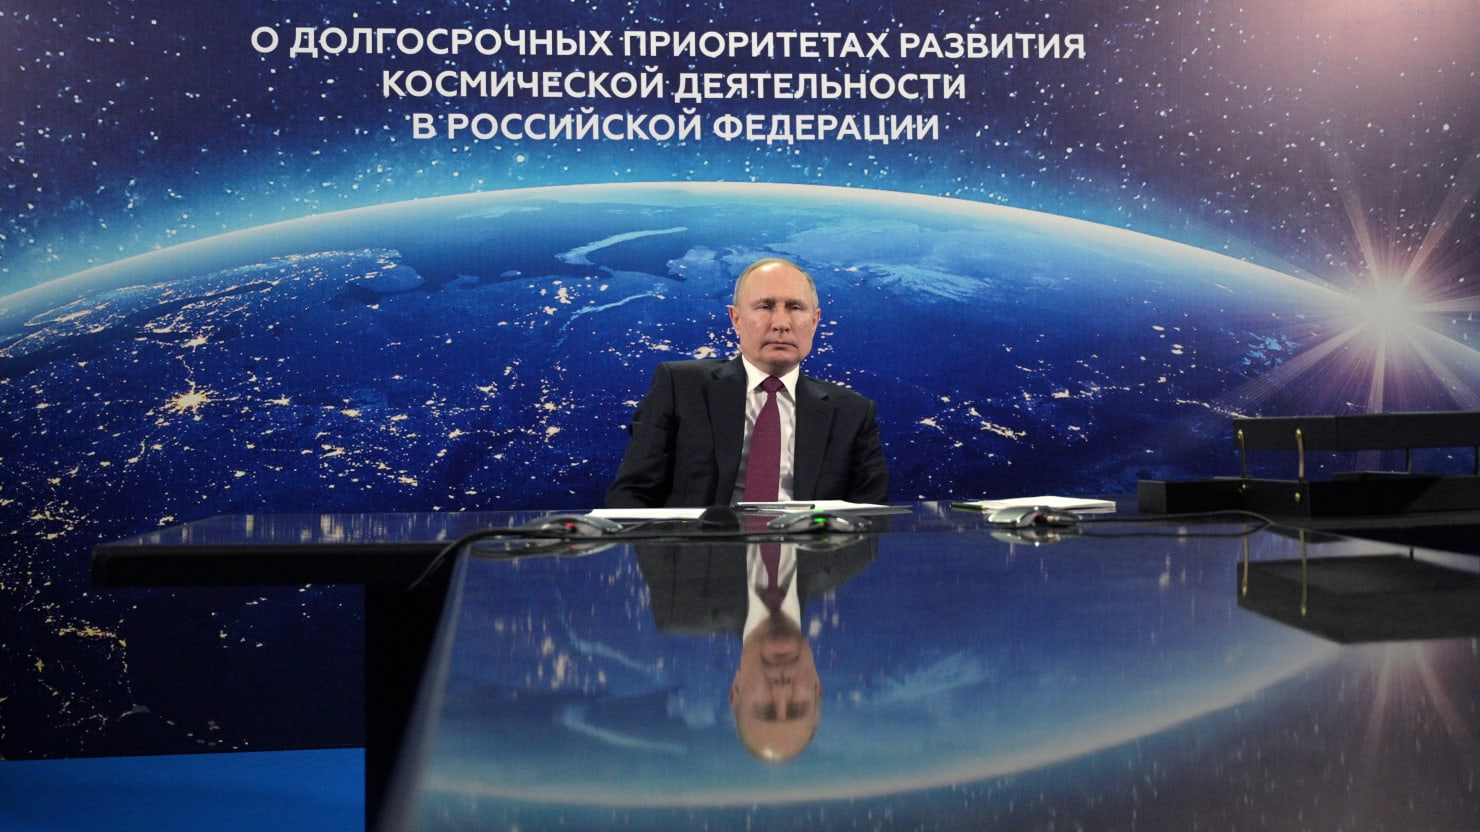 Russia says it is leaving the International Space Station for good